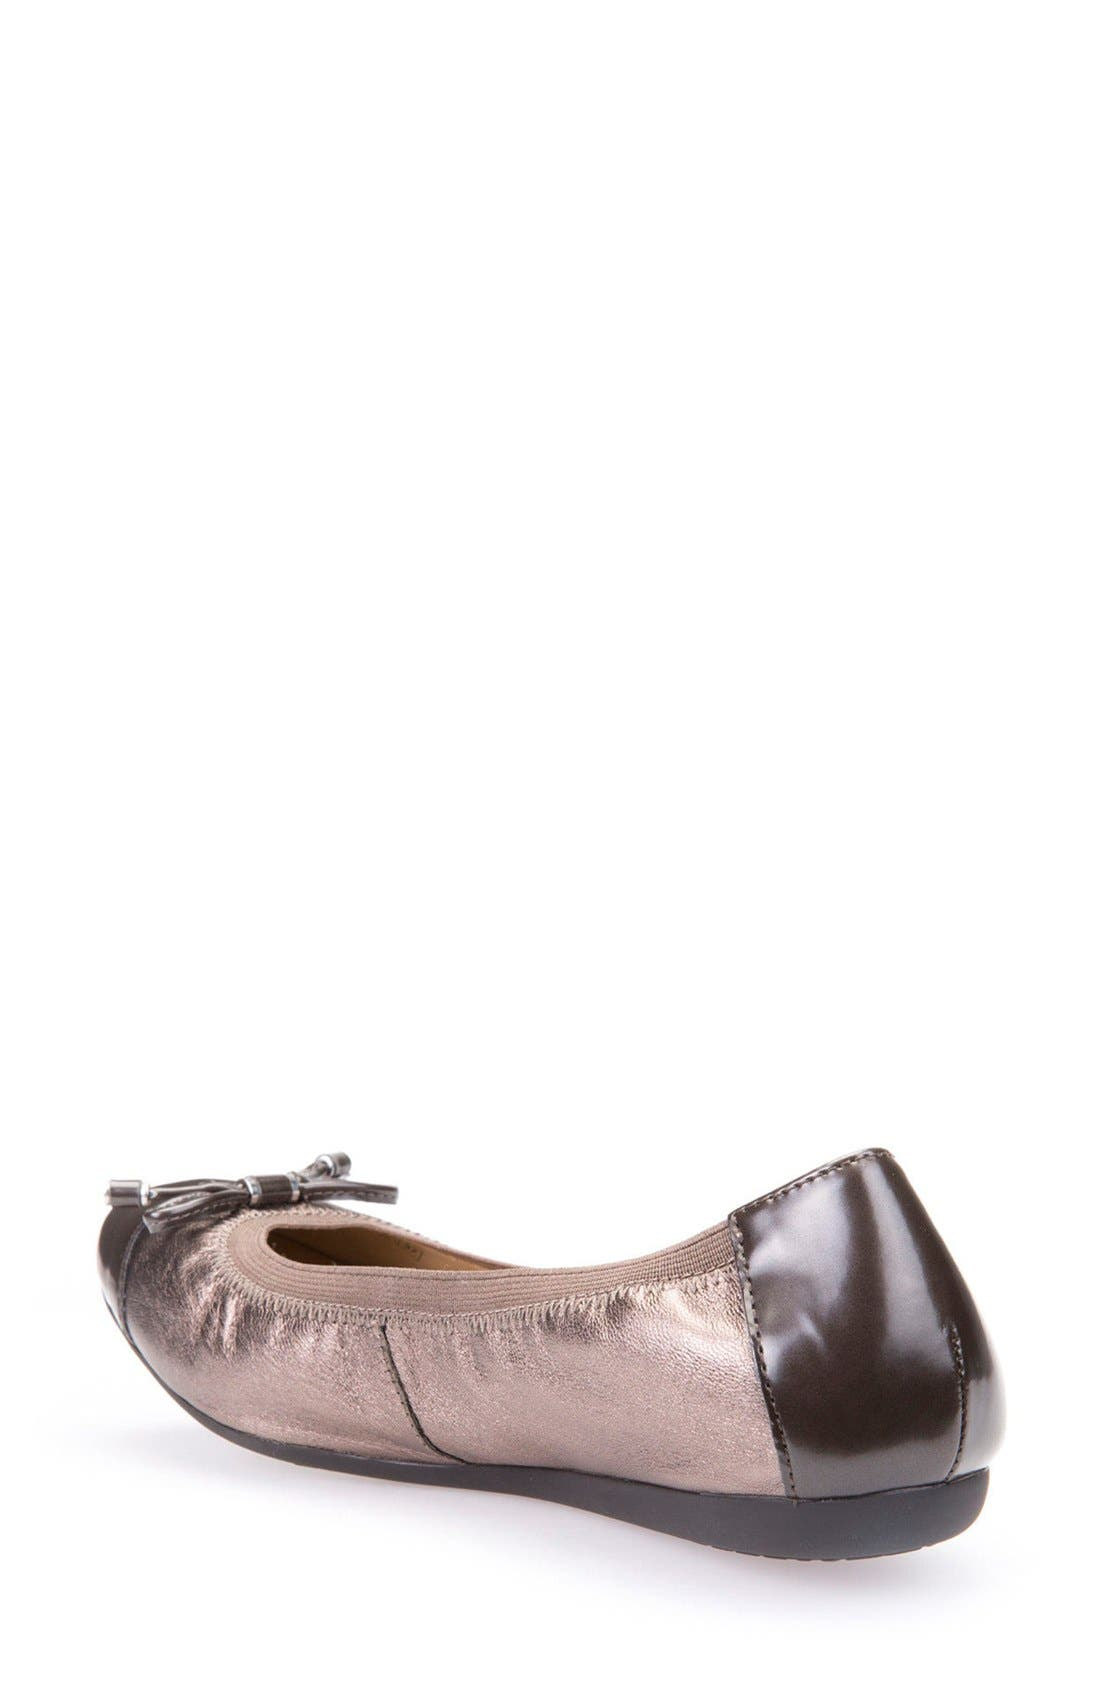 Alternate Image 2  - Geox Lola Fit Cap Toe Ballet Flat (Women)